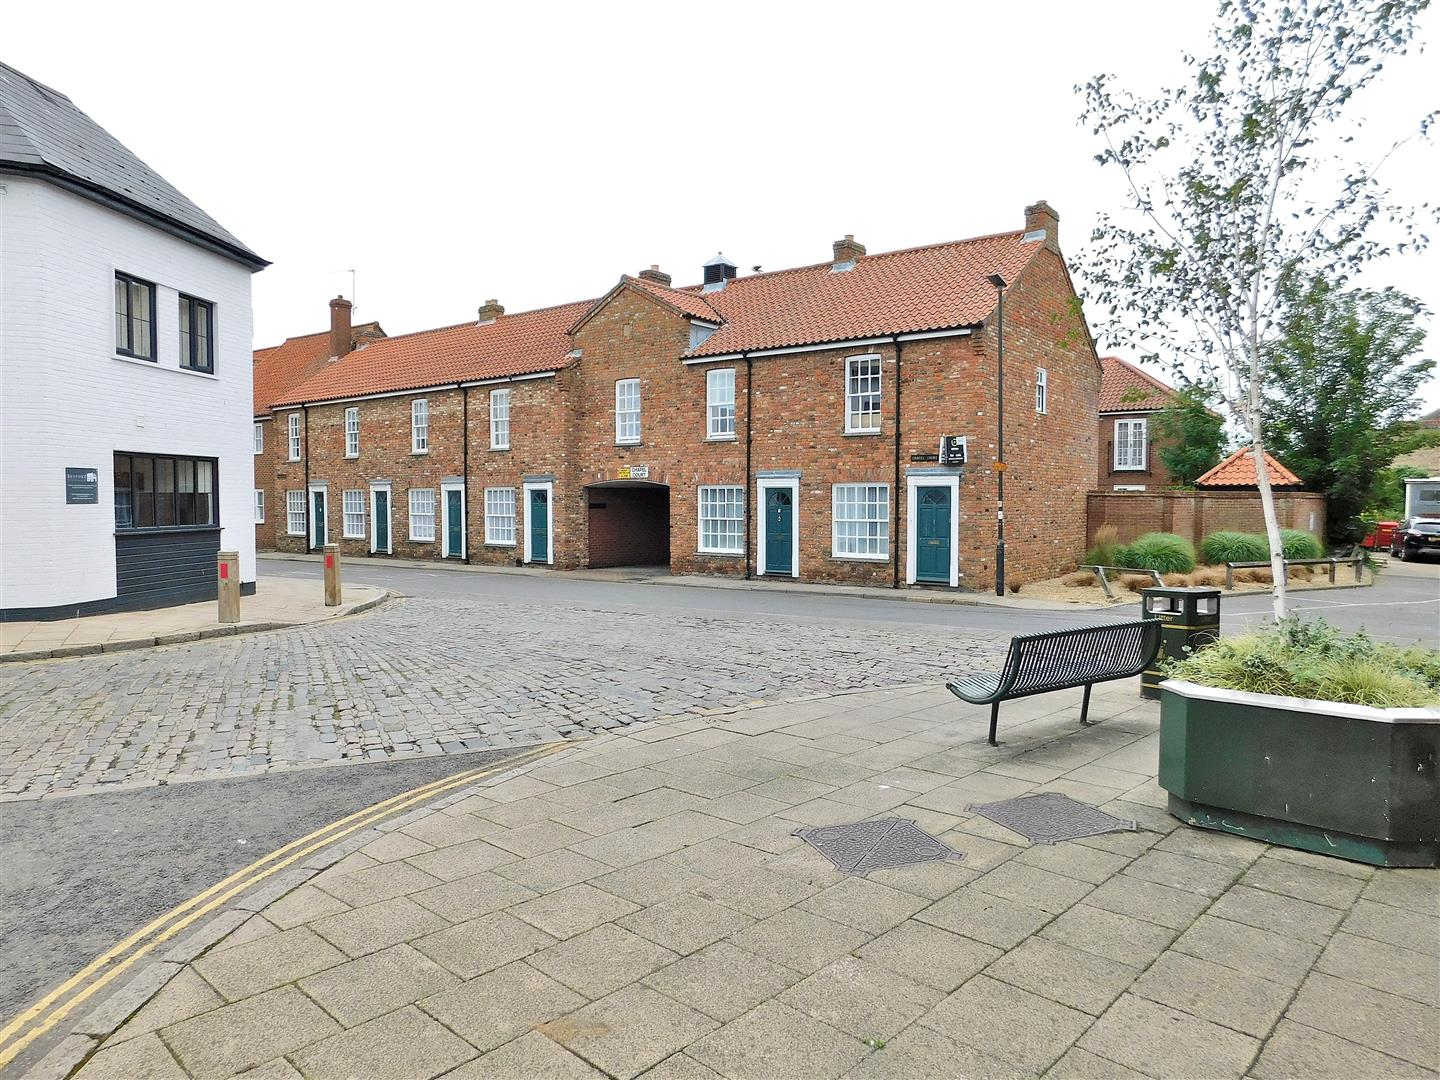 2 bed flat for sale in King's Lynn, PE30 1EG  - Property Image 11